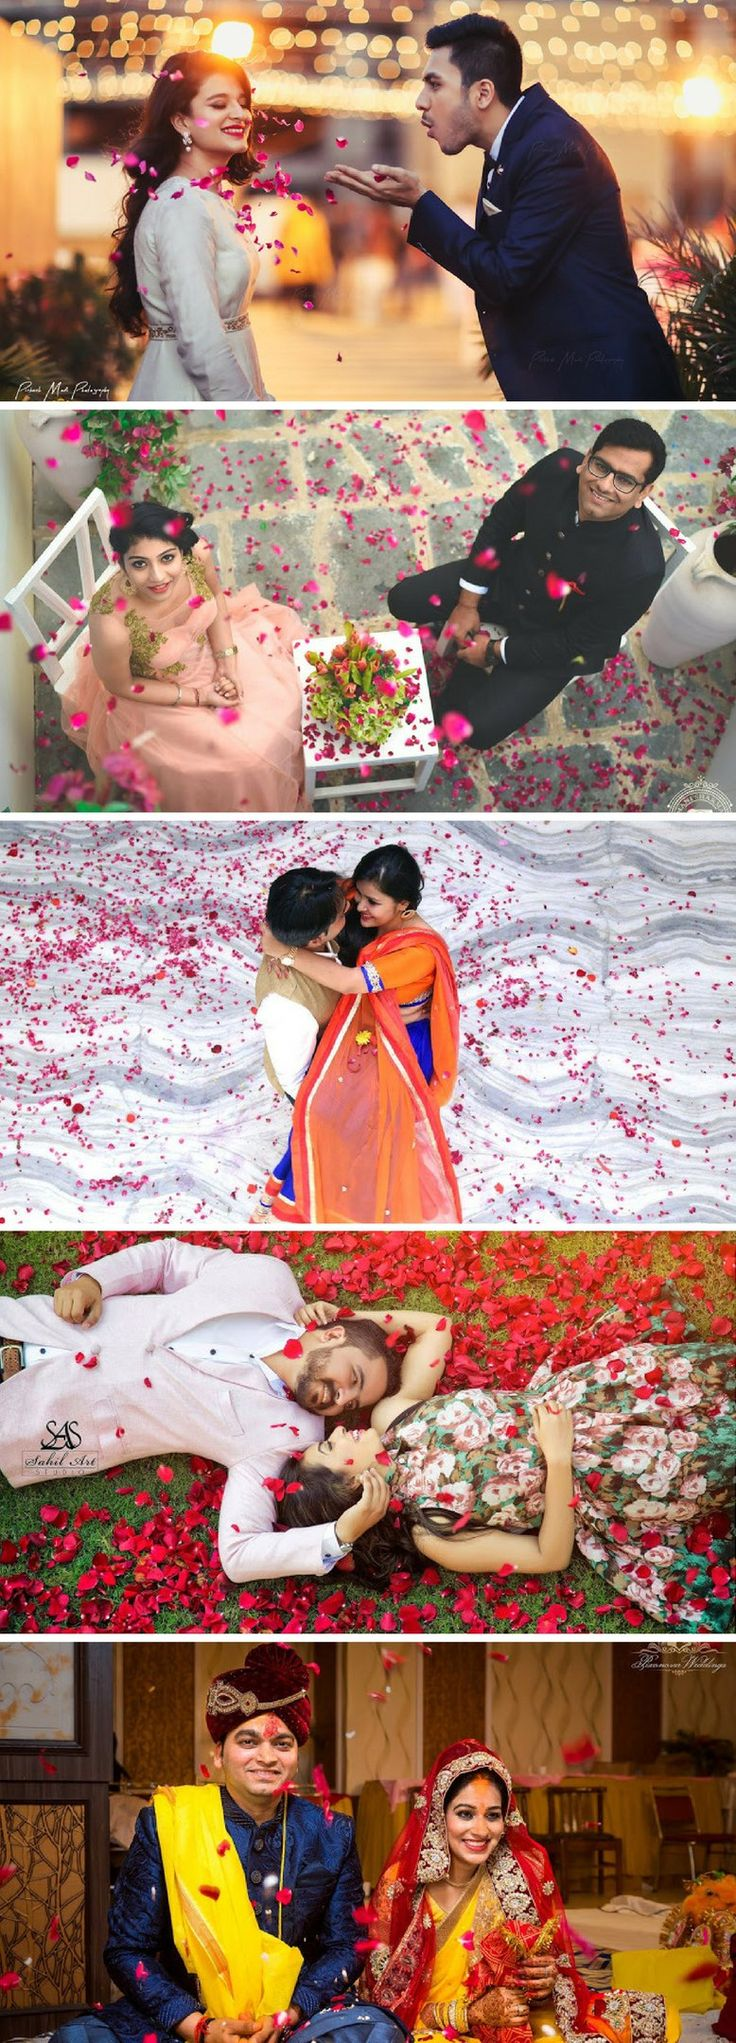 Best Love Story Photoshoot Ideas Petals, Love Story Couple Photosets, Love in the Petal Rose WeddingNet #weddingnet #lovestory #petals #rosepetals #love #indianwedding #indianbride #prewedding #preweddingshoot #twirling #ideasцуу